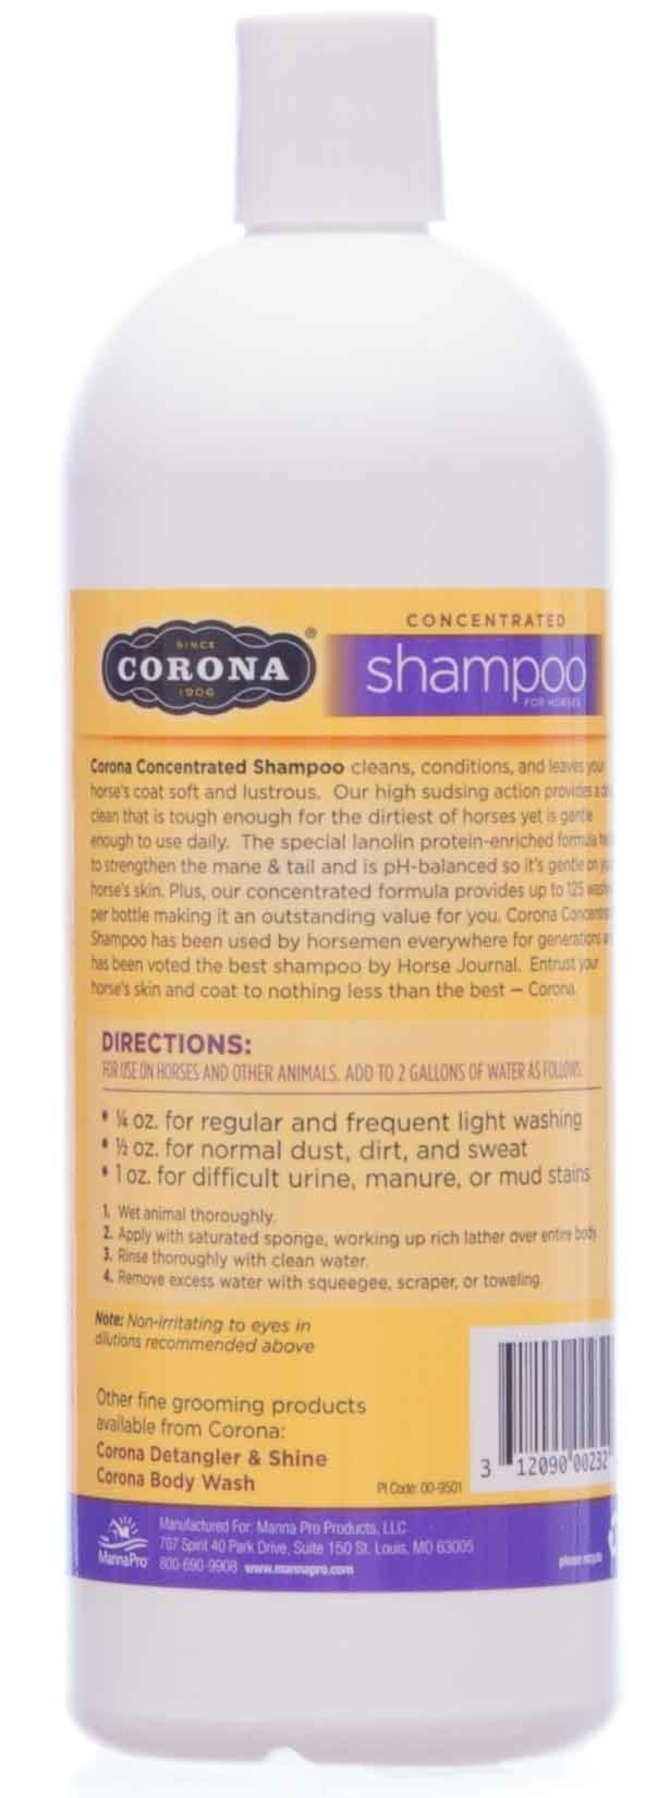 Corona Horse Shampoo for Cleaning, Degreasing, Conditioning, and Oil